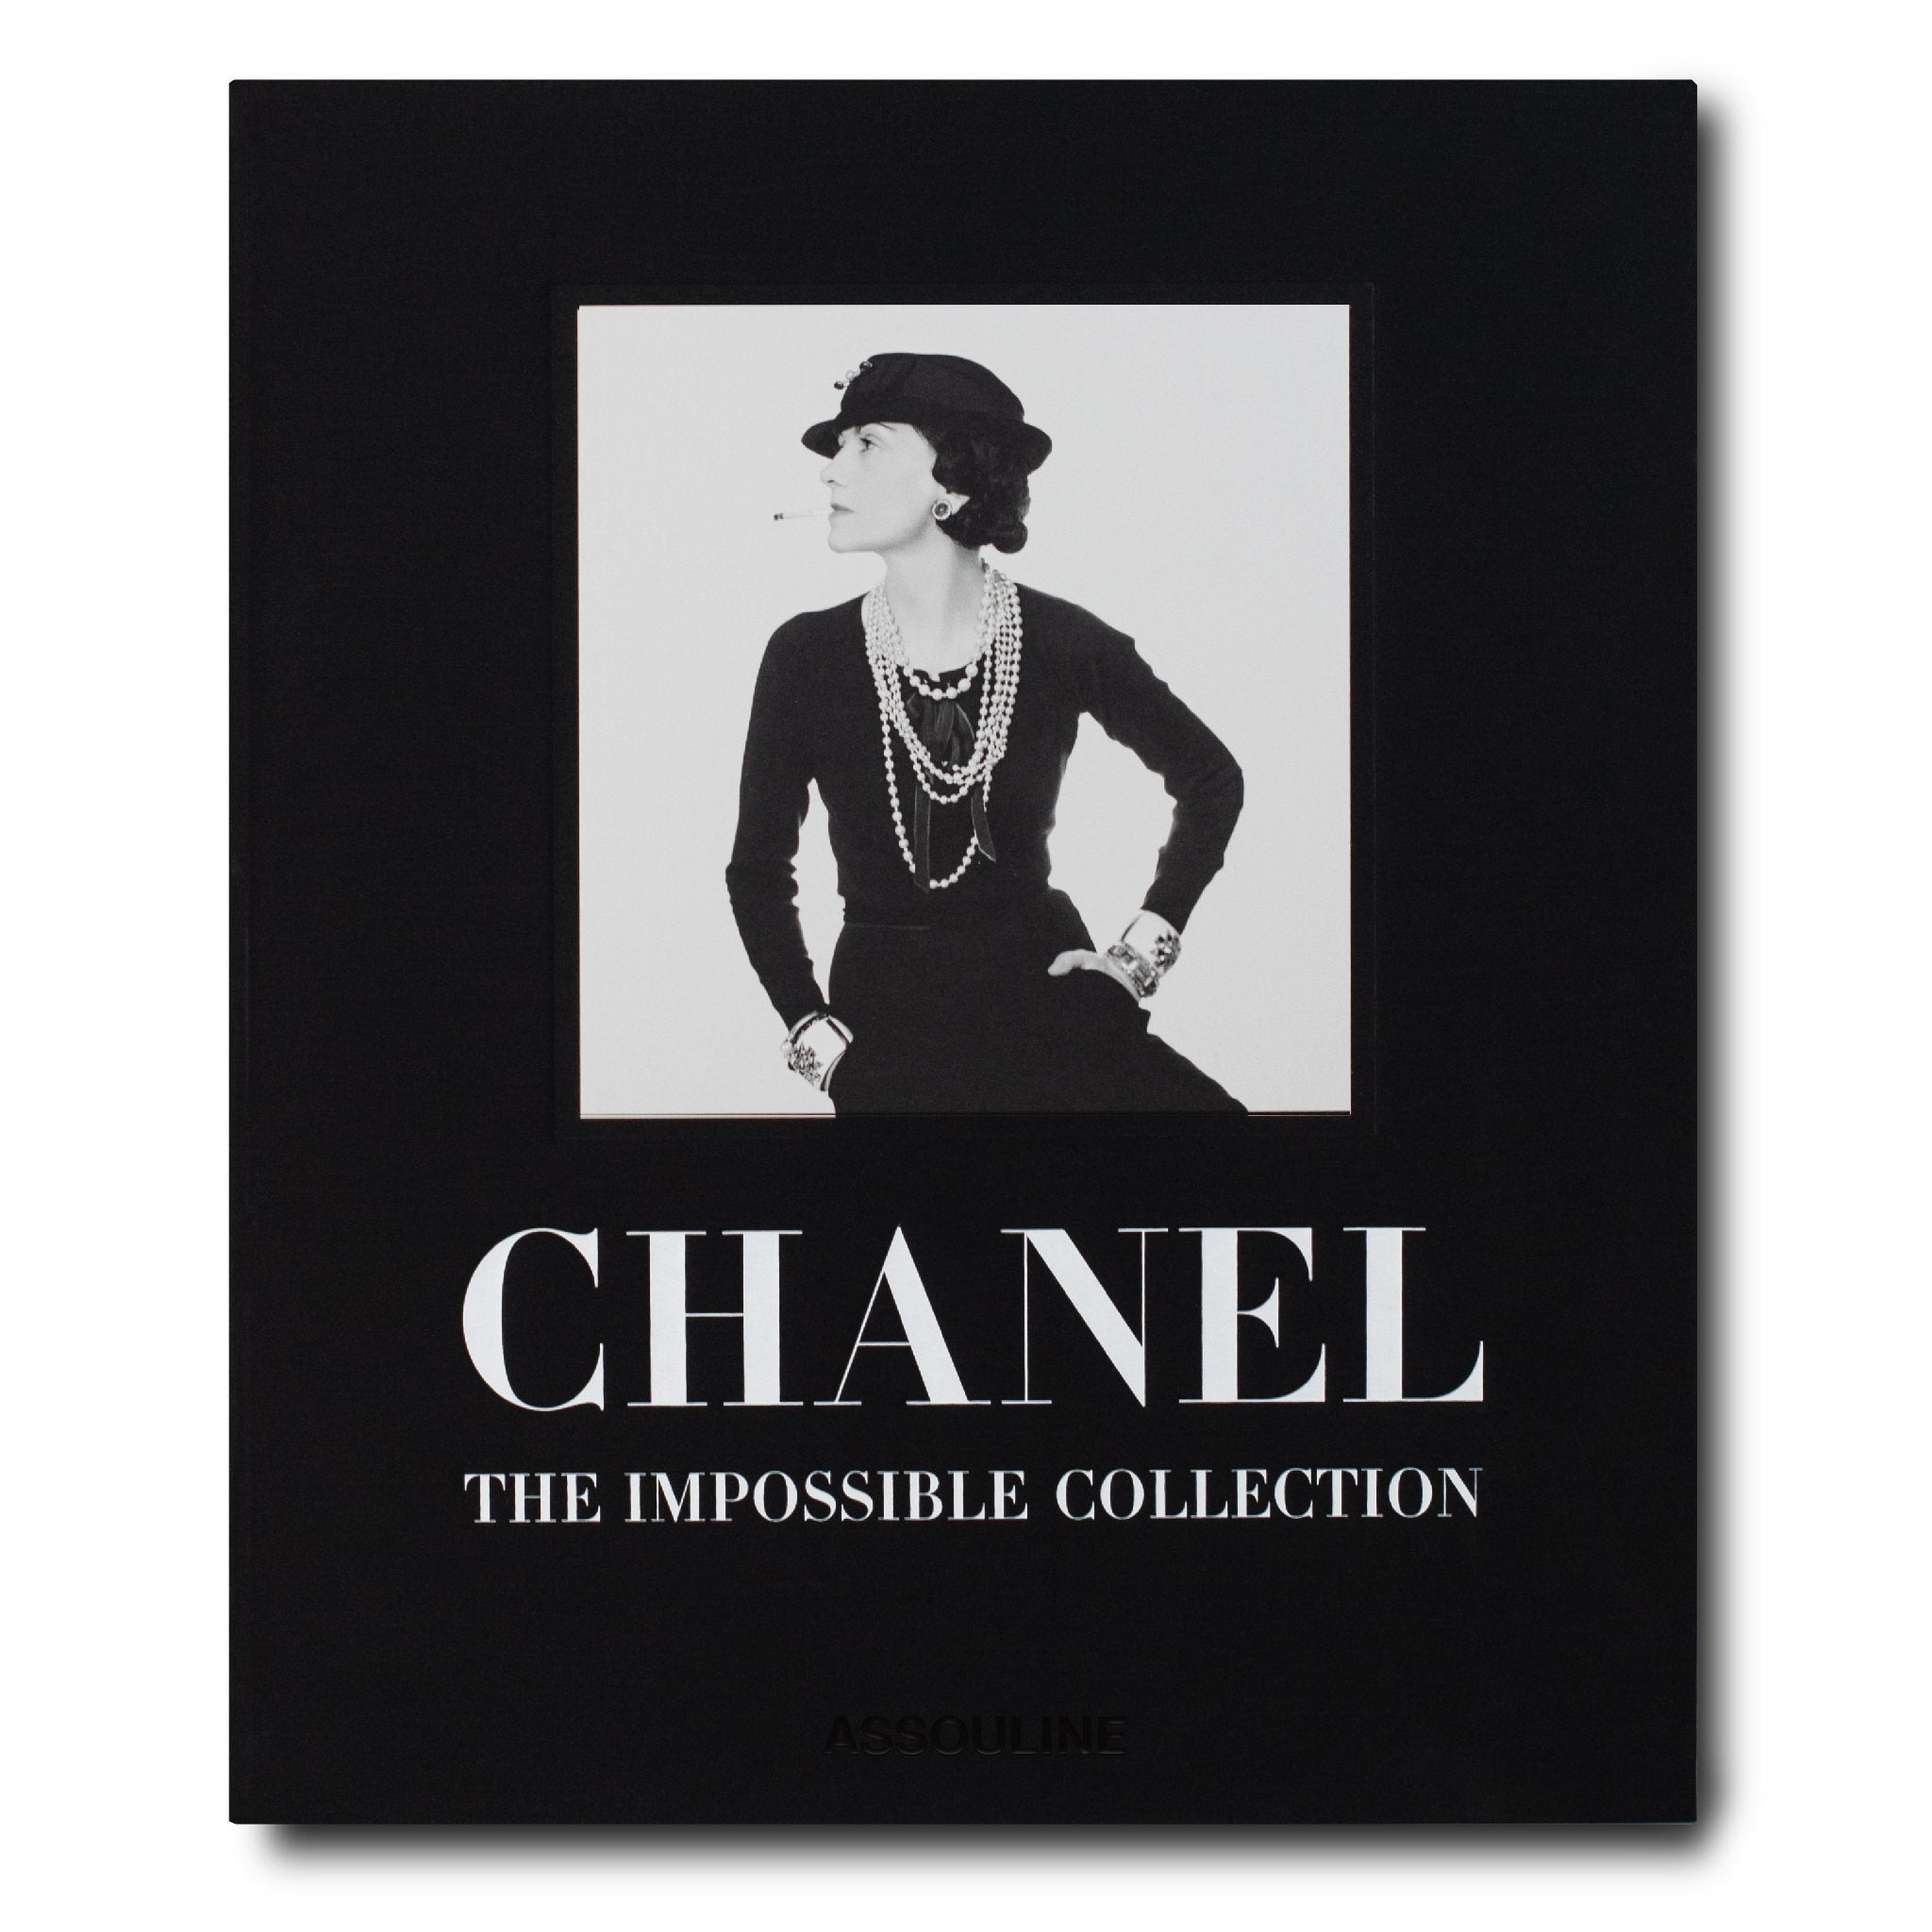 Chanel The Impossible Collection Book By Alexander Fury